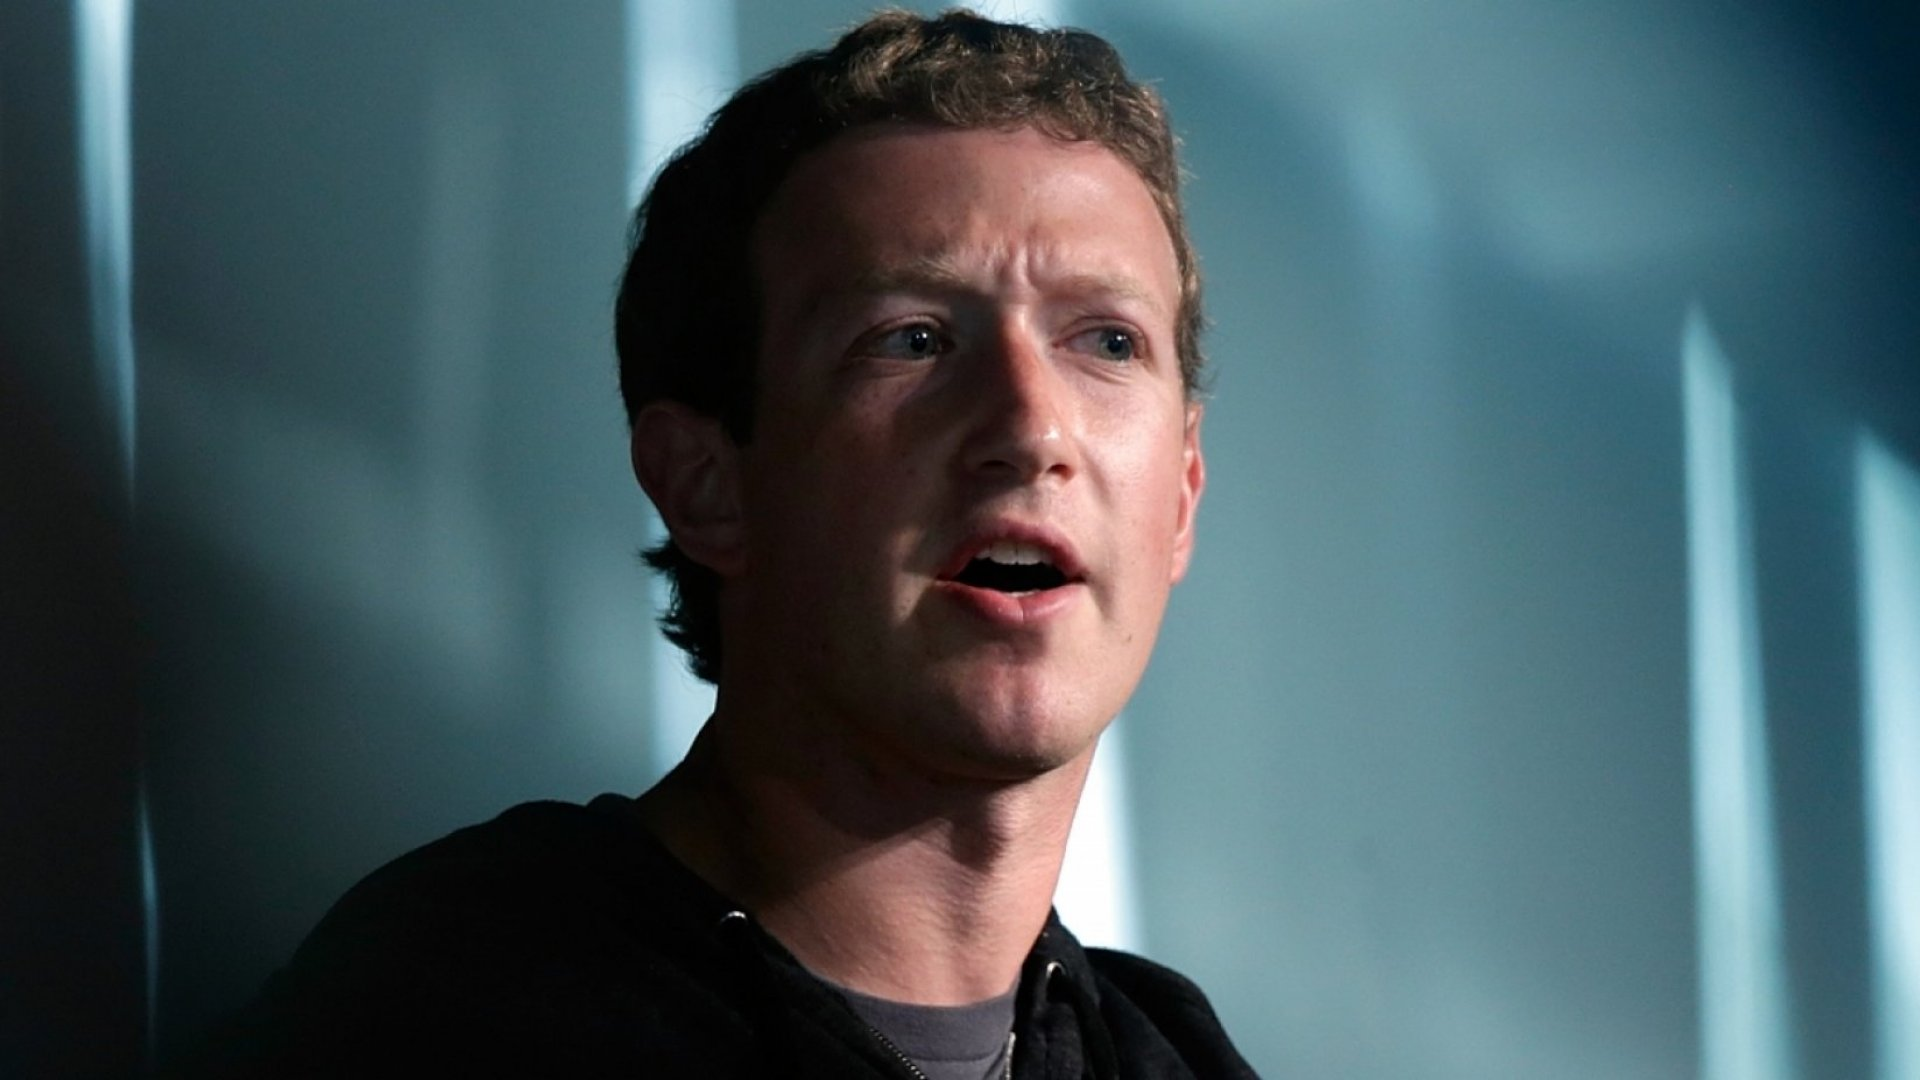 Mark Zuckerberg's FWD.us Fires Back at Trump's Immigration Plan